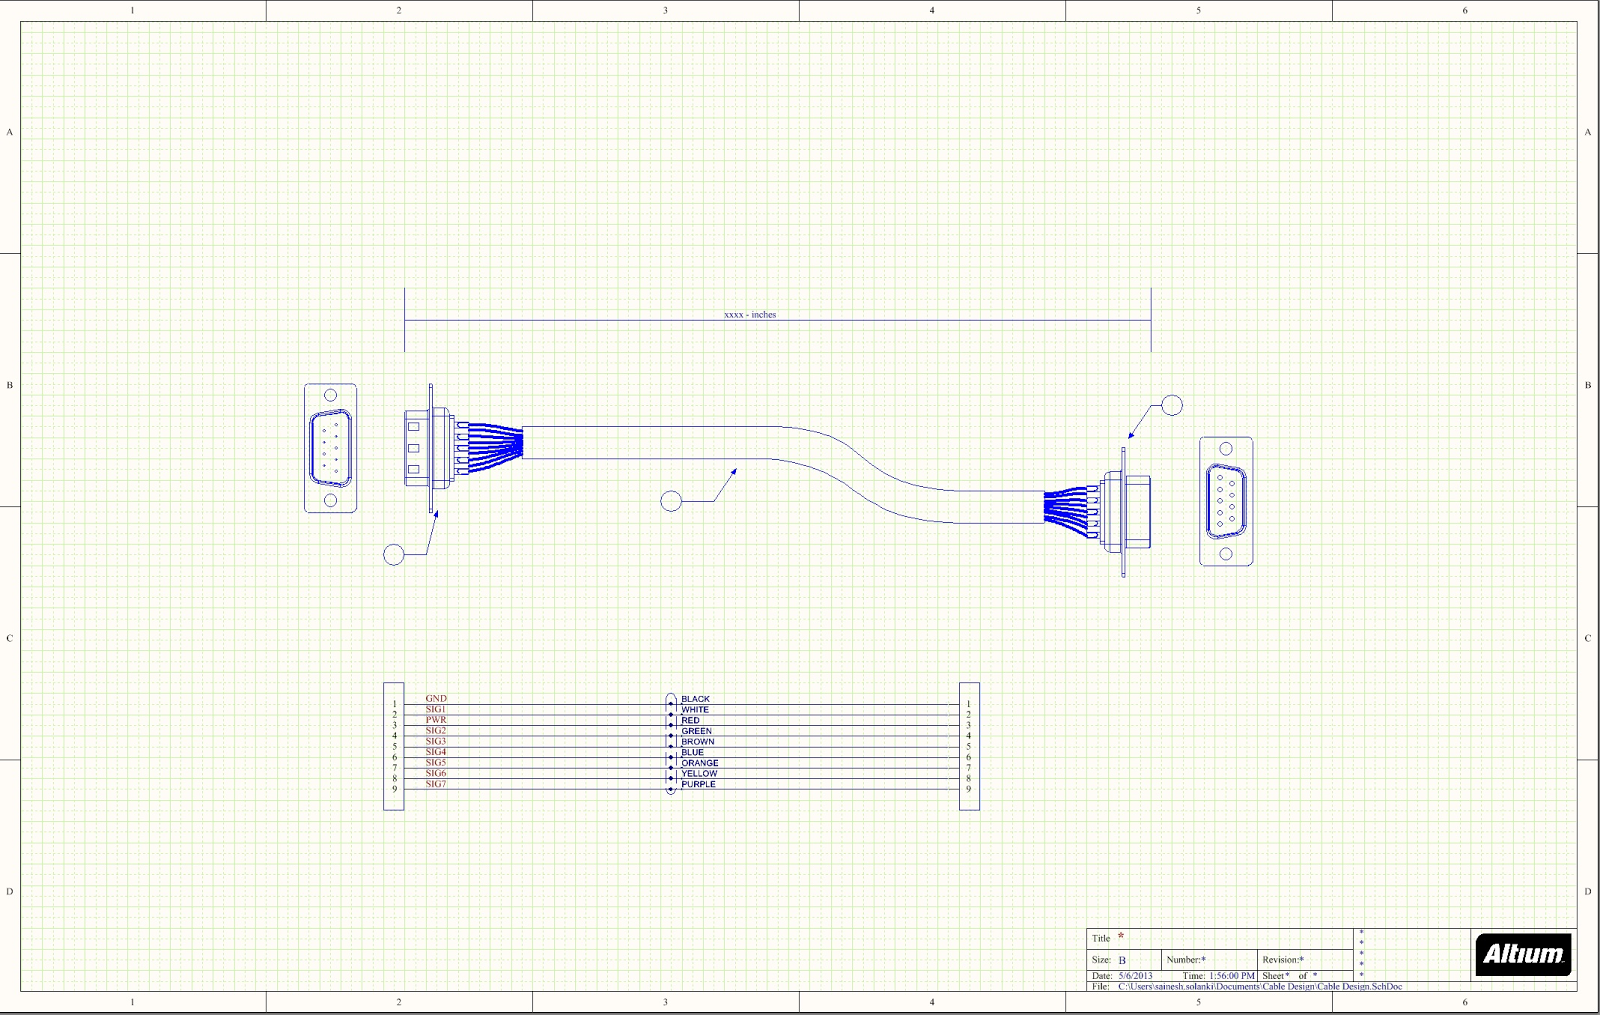 Cable Assembly Drawings For Pcb Cable Assemblies  Part 1